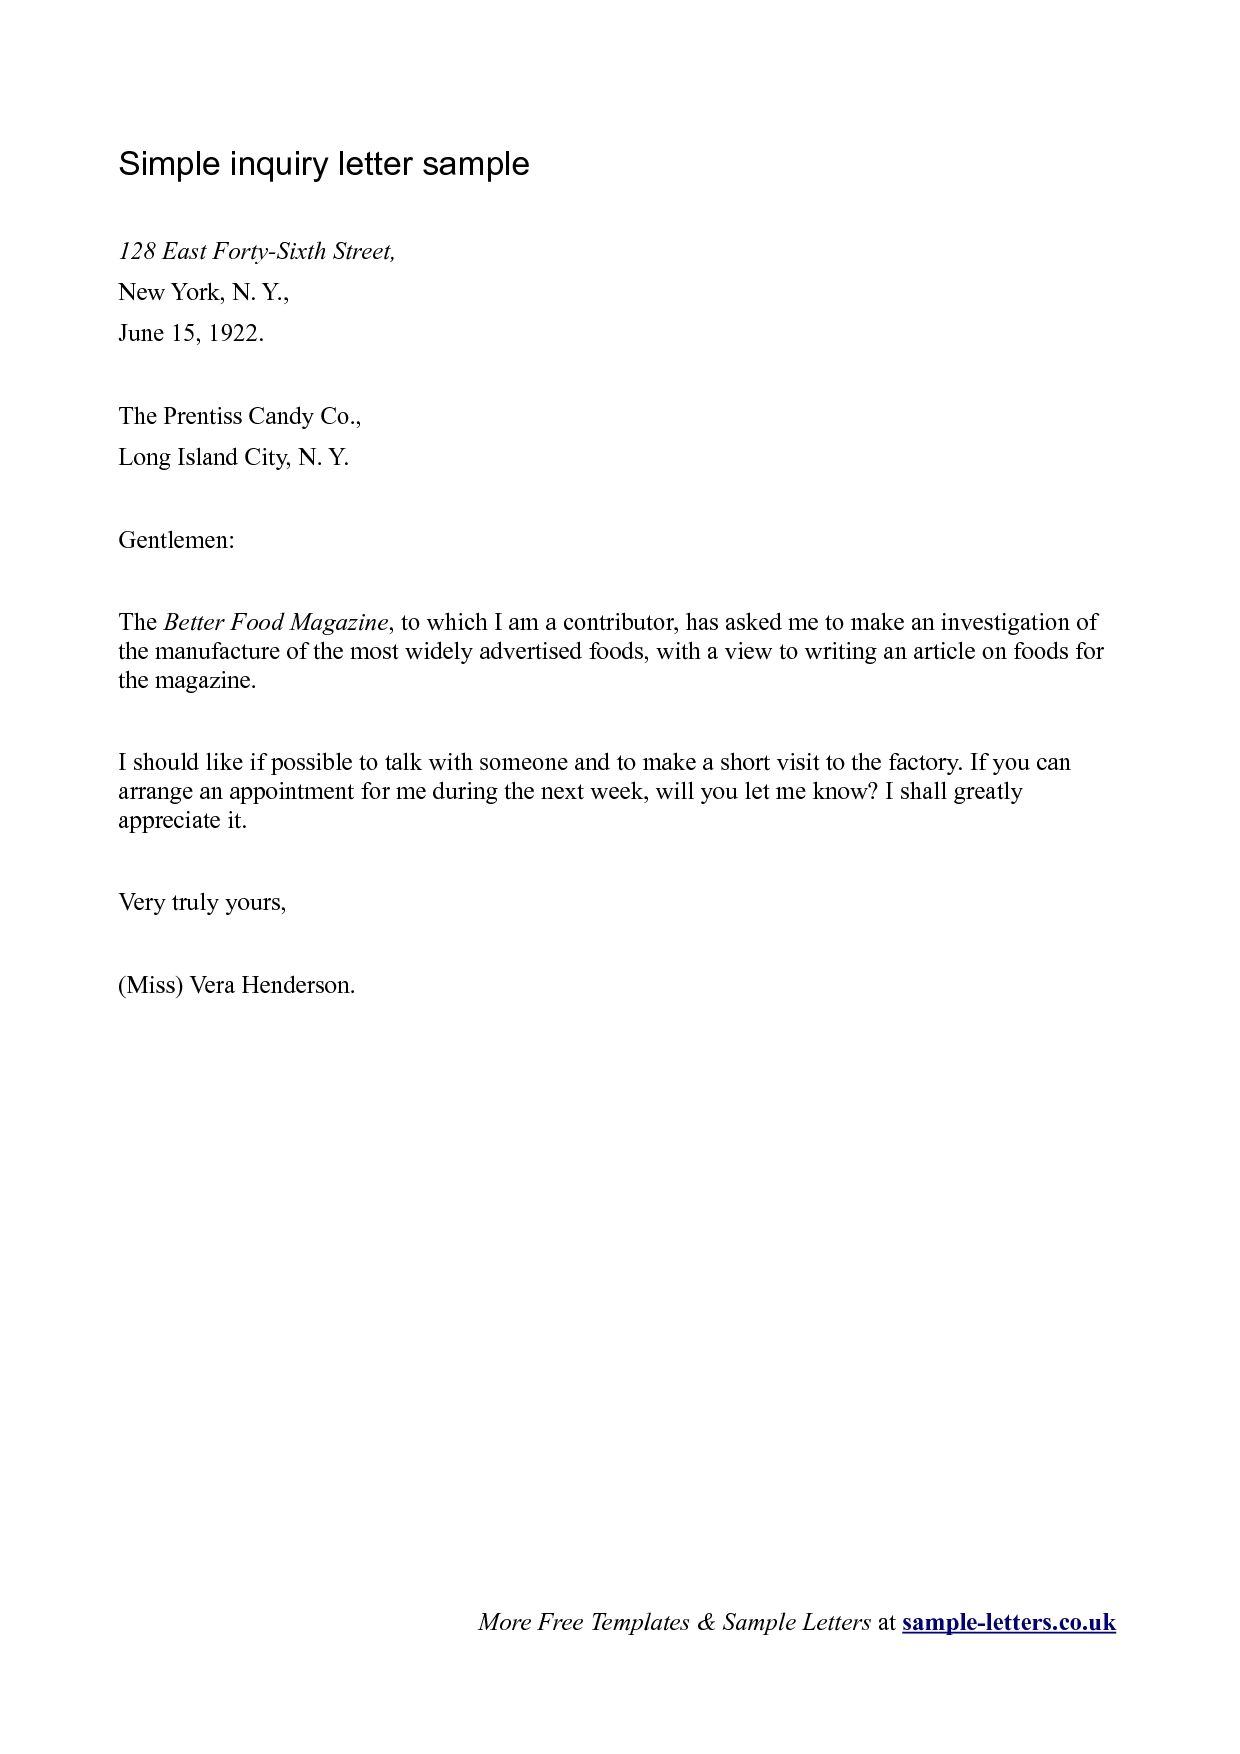 Business letter of inquiry sample the letter sample reading and business letter format template letters inquiry example pricing best free home design idea inspiration spiritdancerdesigns Image collections